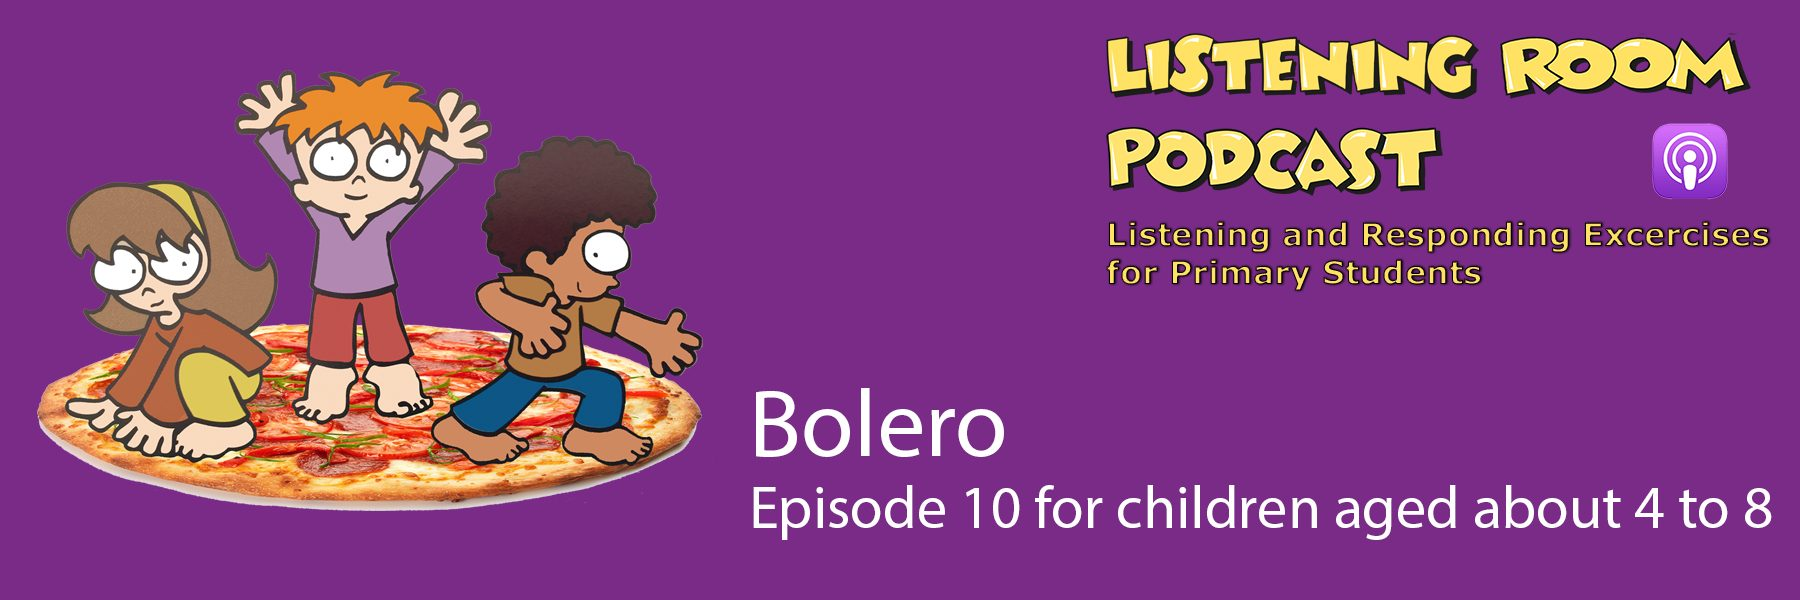 Listening Room Series 1 Episode 10 Bolero